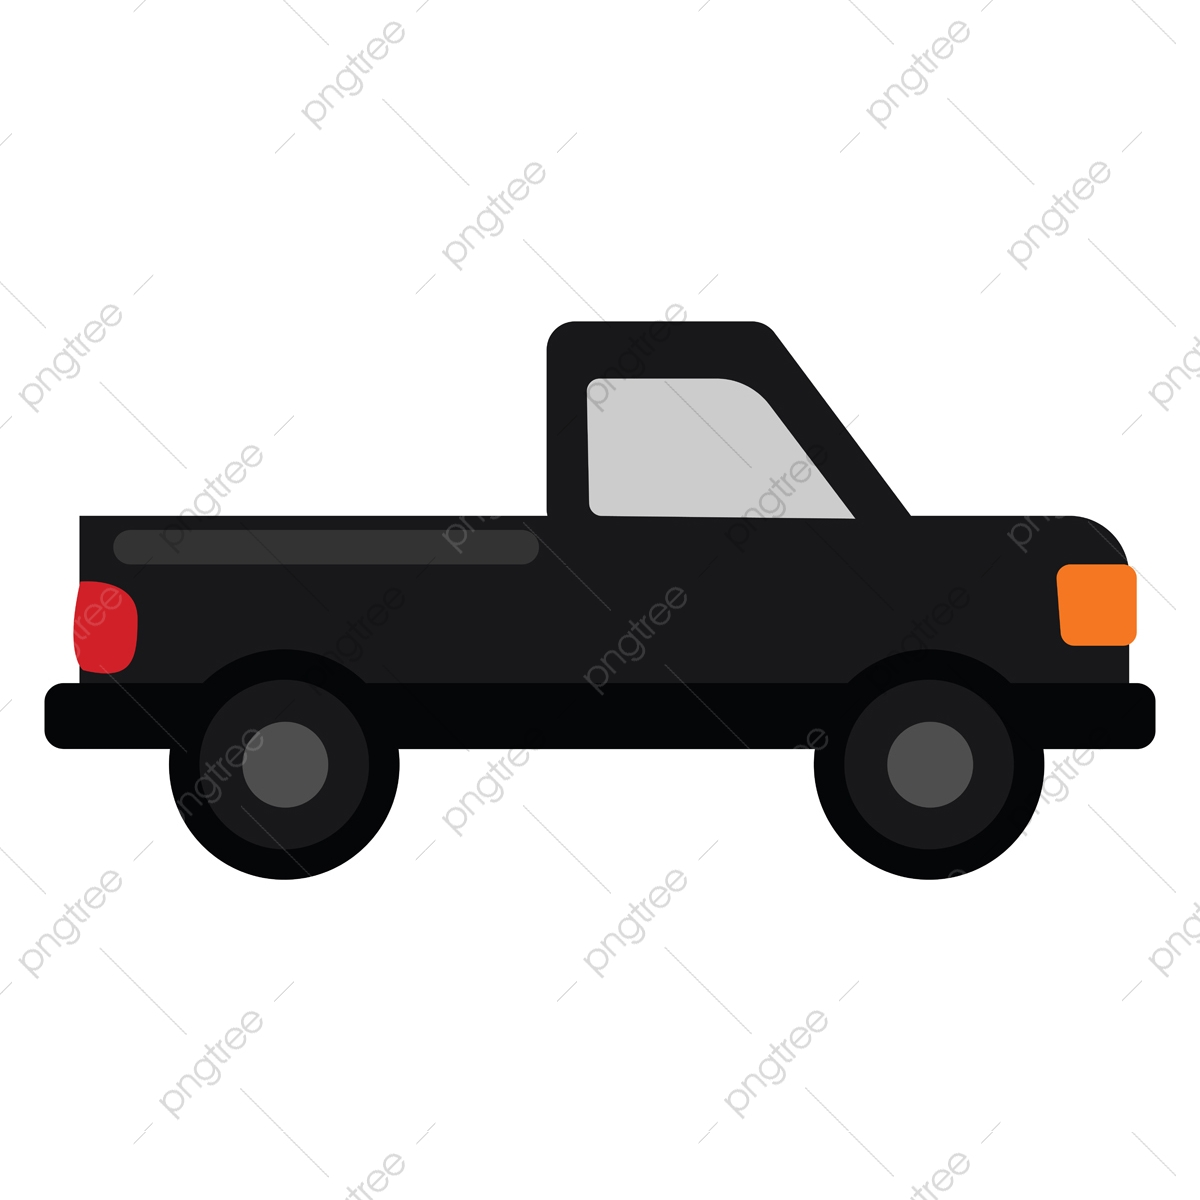 Clipart Of A Pickup Truck Set On Isolated White Background Viewe Clipart Green Pickup Png And Vector With Transparent Background For Free Download